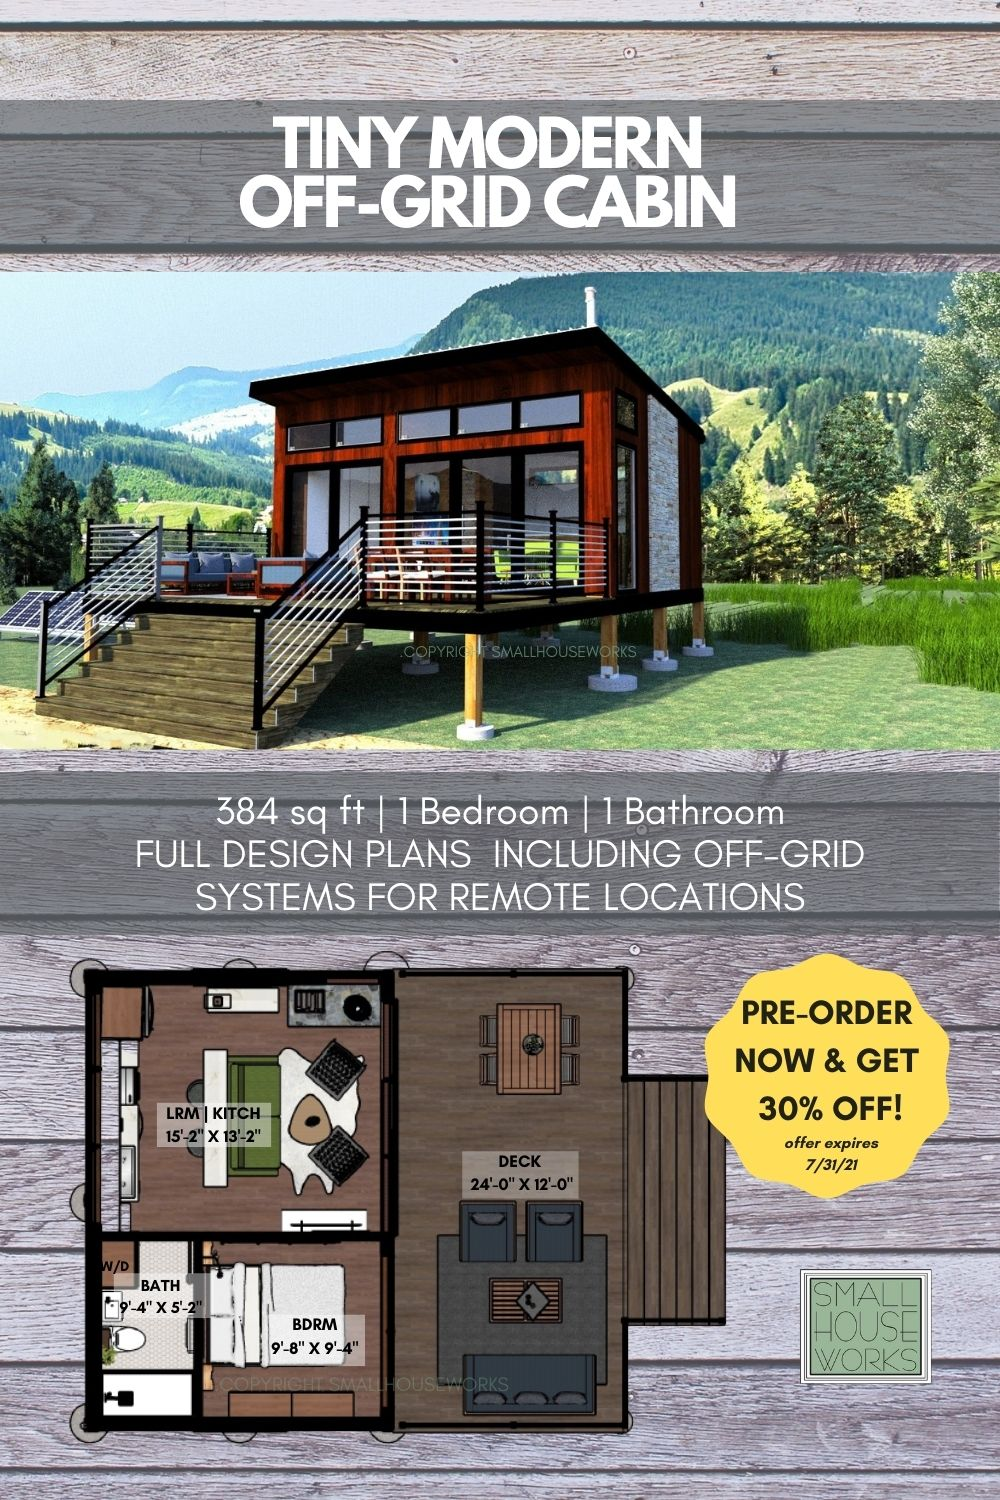 Image of Tiny Modern Off Grid Cabin Plan. Pre-order now and get 30% off- offer expires 7/31/21.